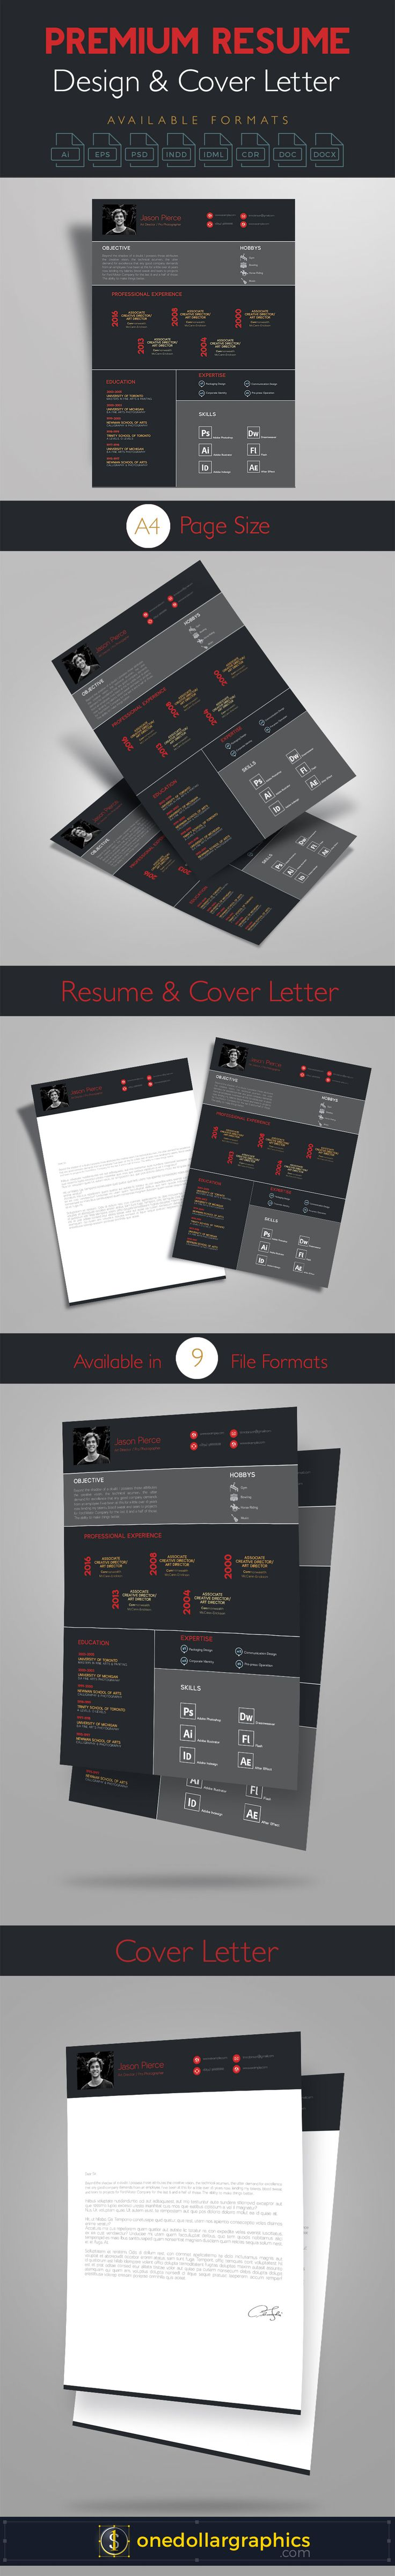 cover letter template internship%0A Premium Resume  CV  Design  Cover Letter Template    PSD MockUps